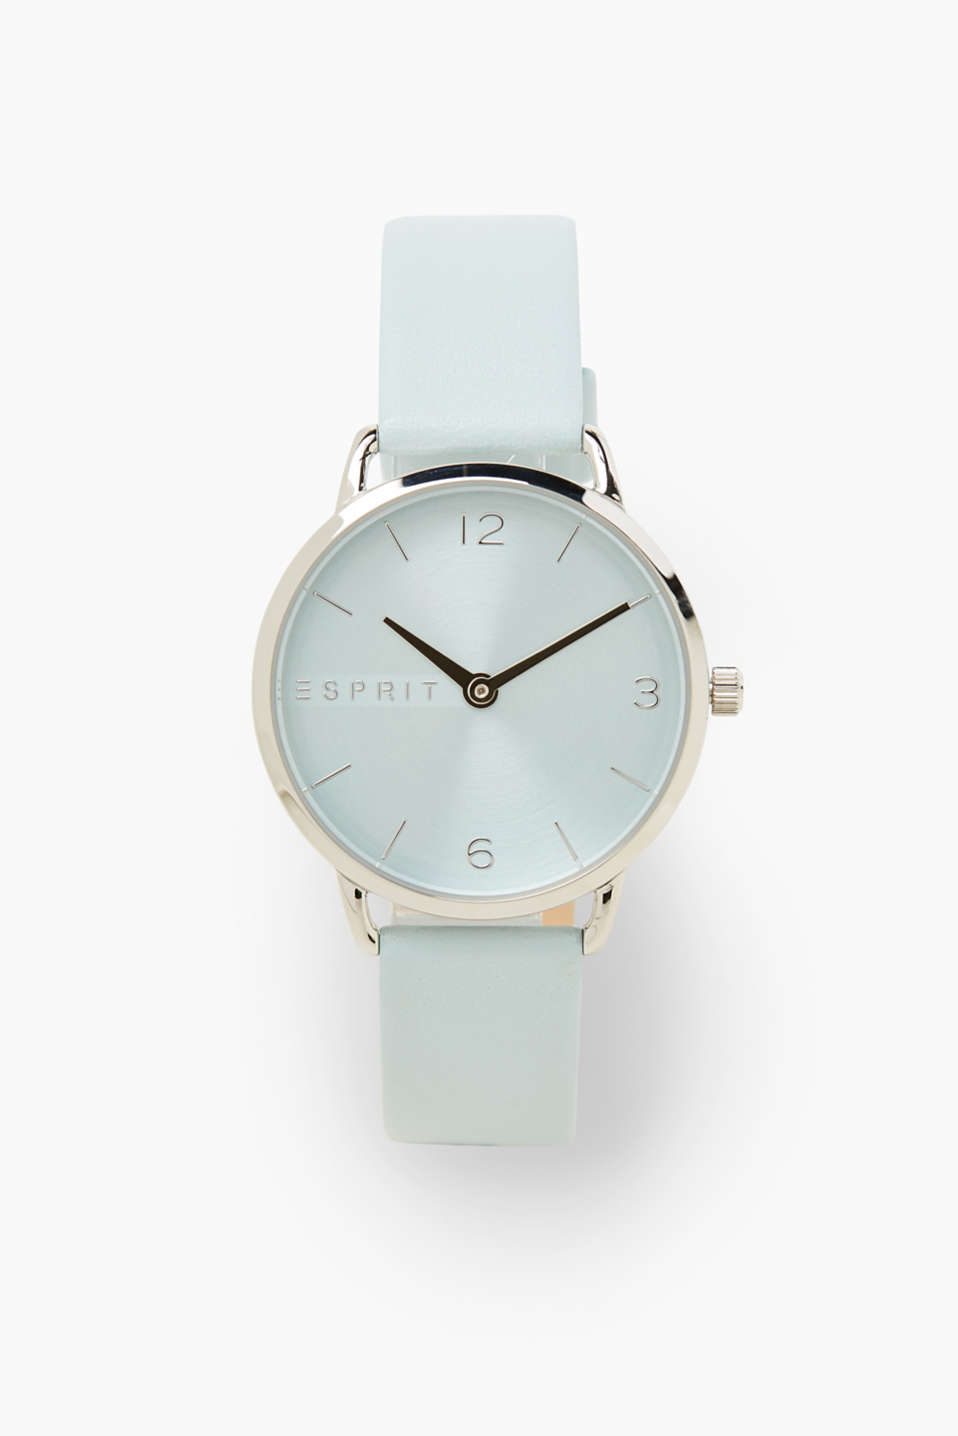 Esprit - Watch with a pastel blue leather strap